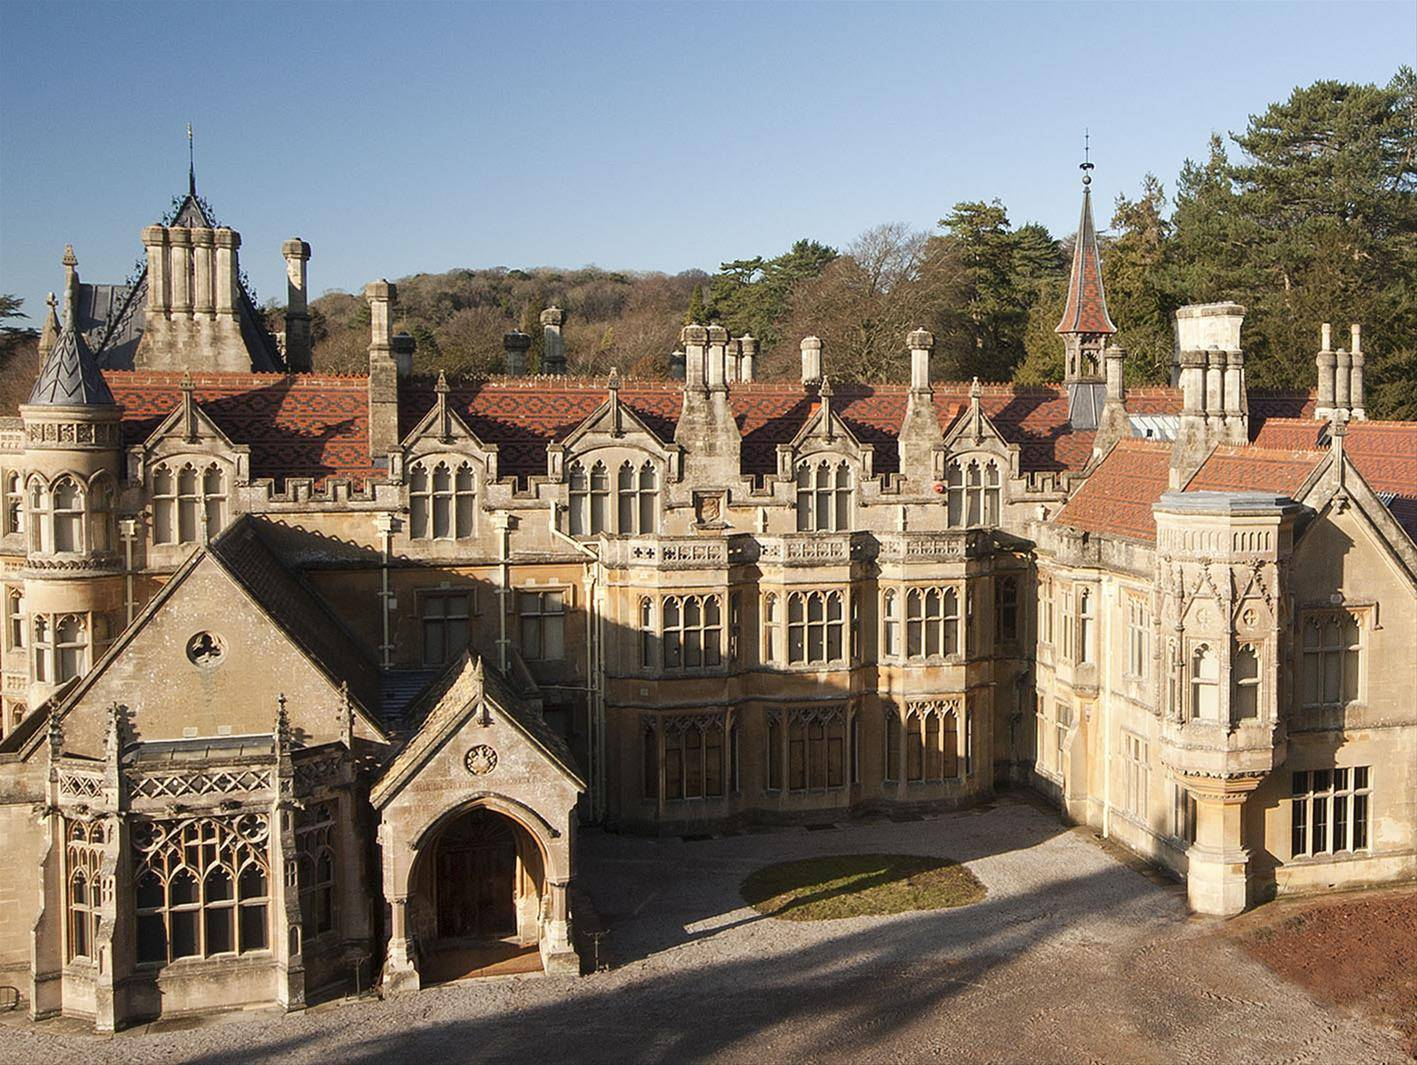 tyntesfield-house-grade-listed-victorian-gothic-revival-mansion_291339.jpg